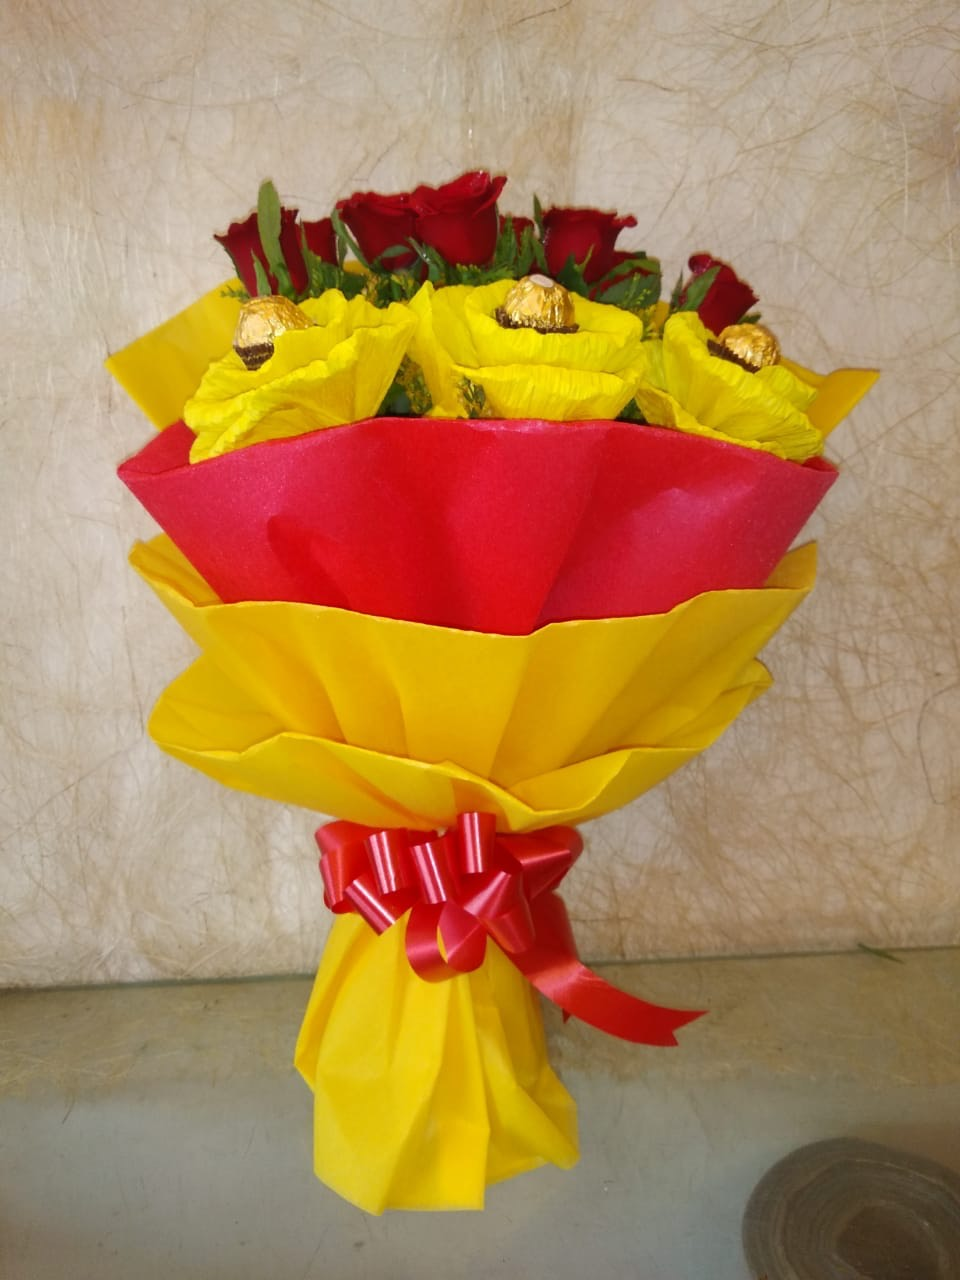 Cake Delivery in Amrapali NoidaRed Roses Ferrero Rocher Bunch